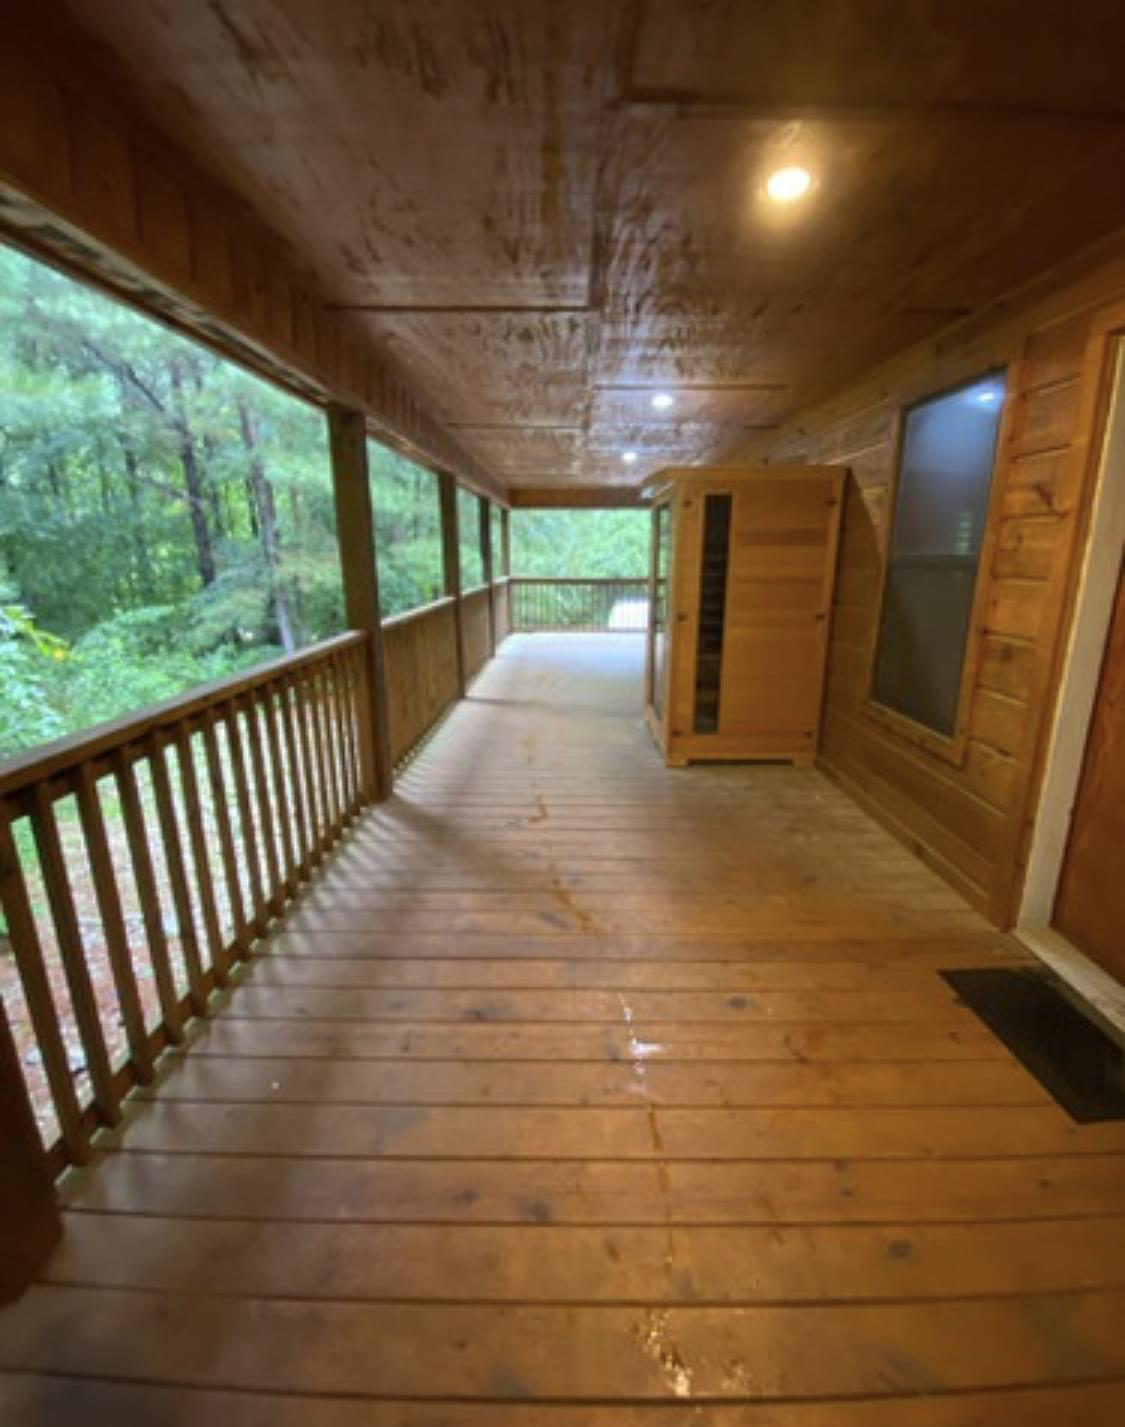 Broken Bow Cabins, Broken Bow Vacation Cabins, Hochatown Cabins, Cabins in Broken Bow, Beavers Bend Cabins, Broken Bow Lake Cabins, Sundown Cabin Rentals